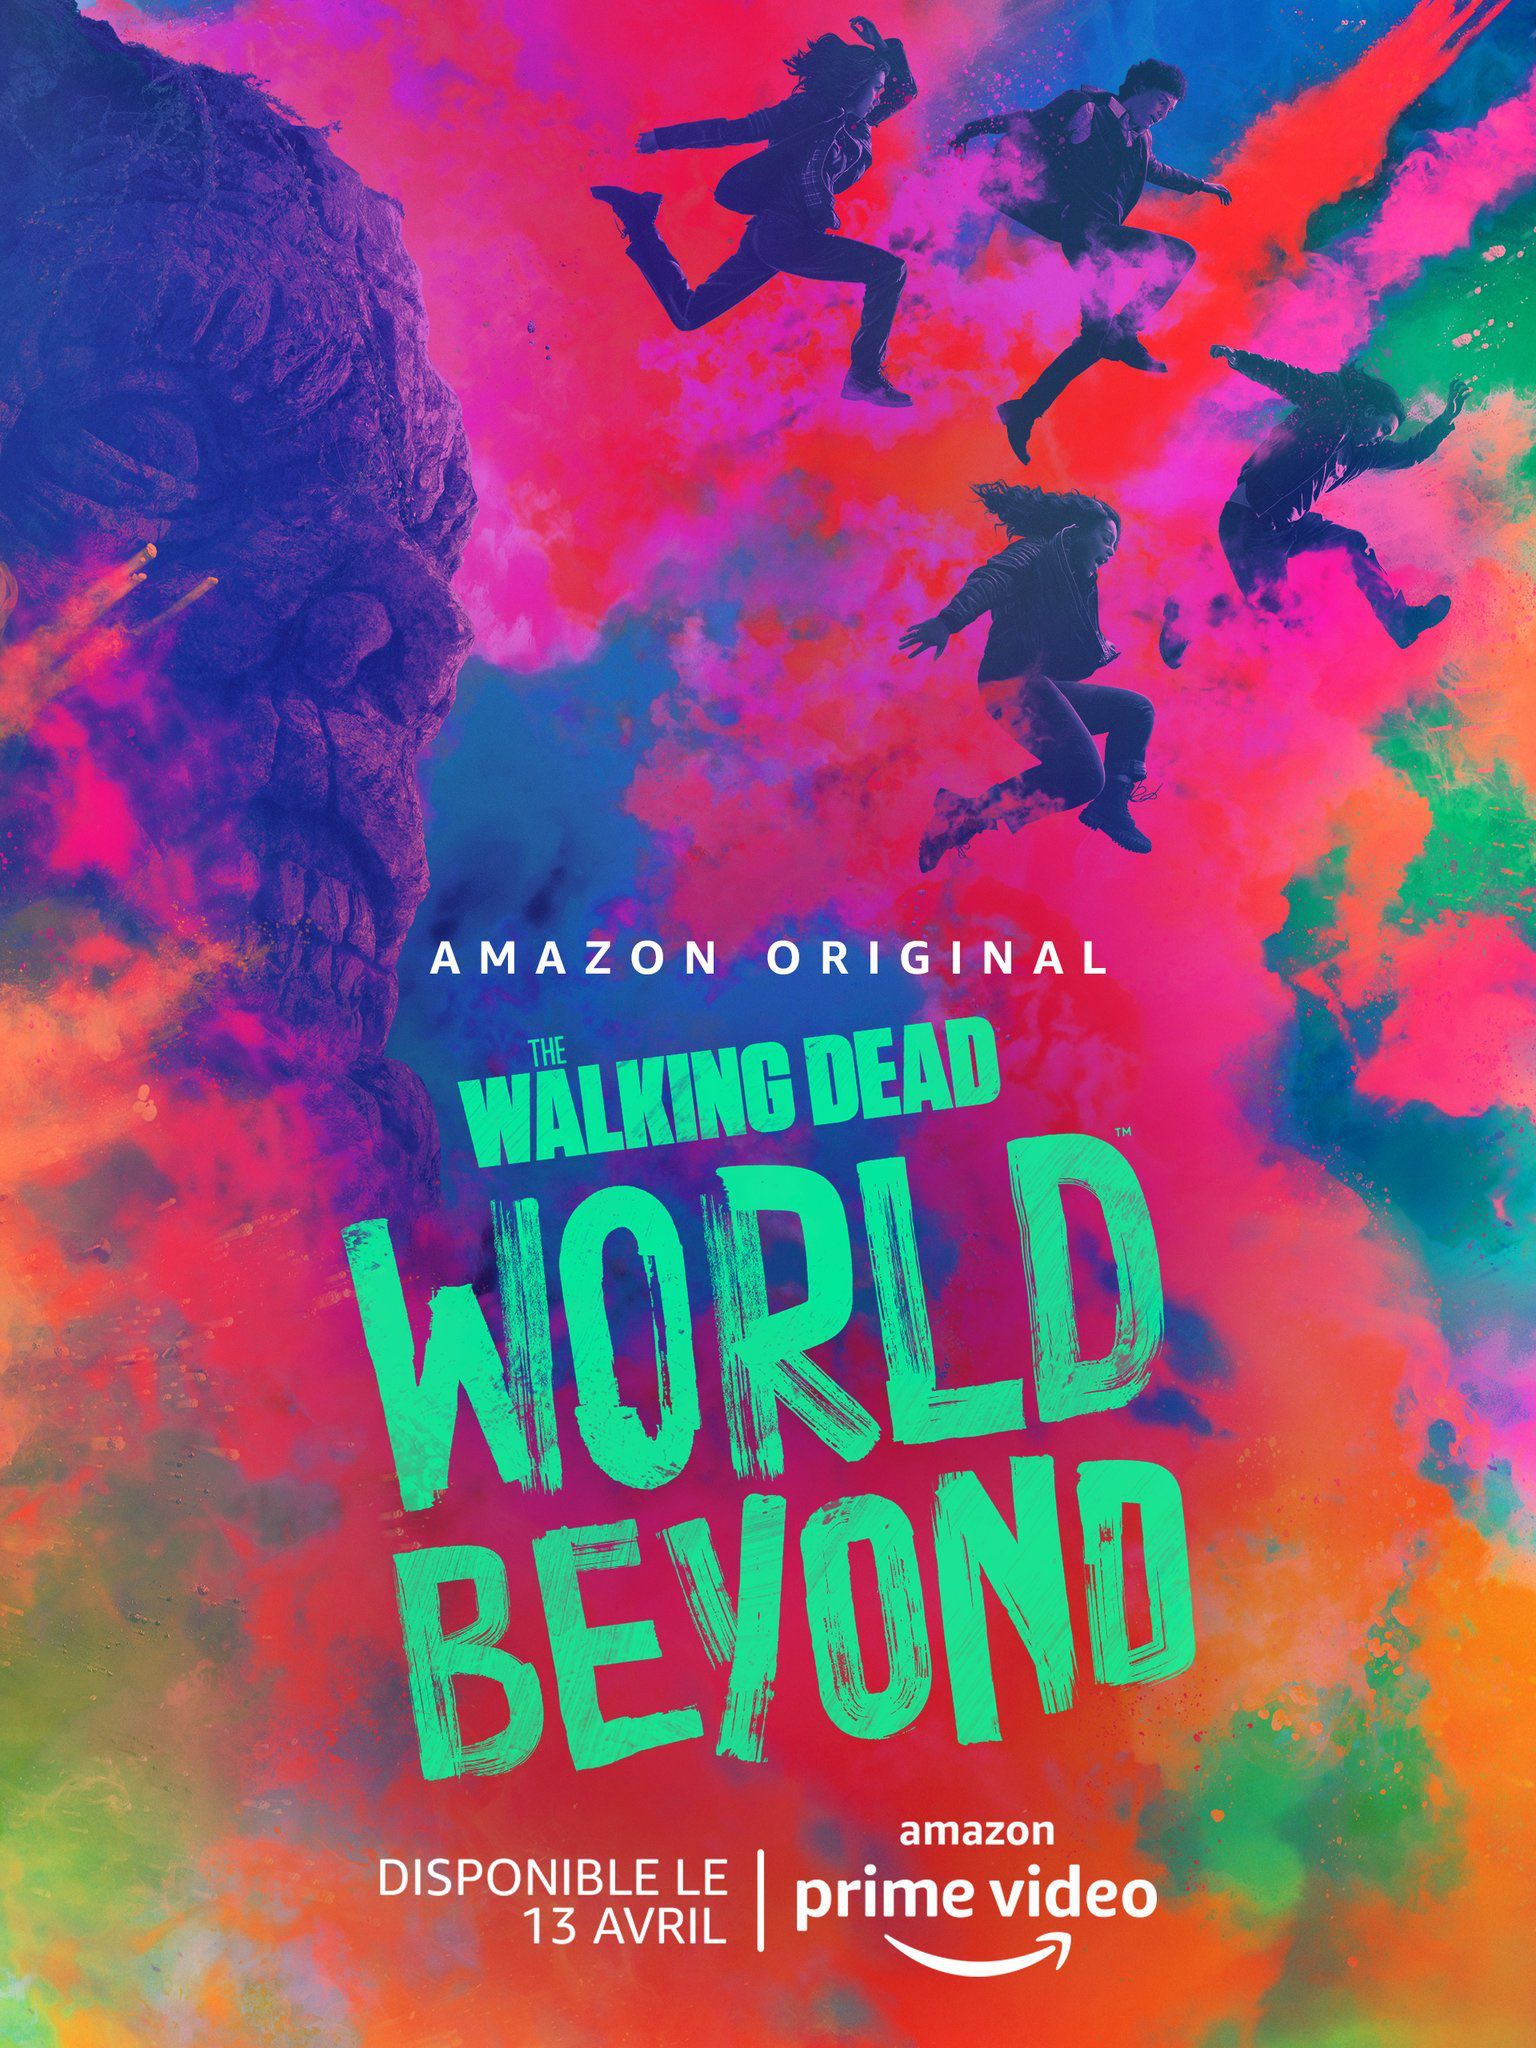 The Walking Dead: World Beyond - Série (2020) streaming VF gratuit complet